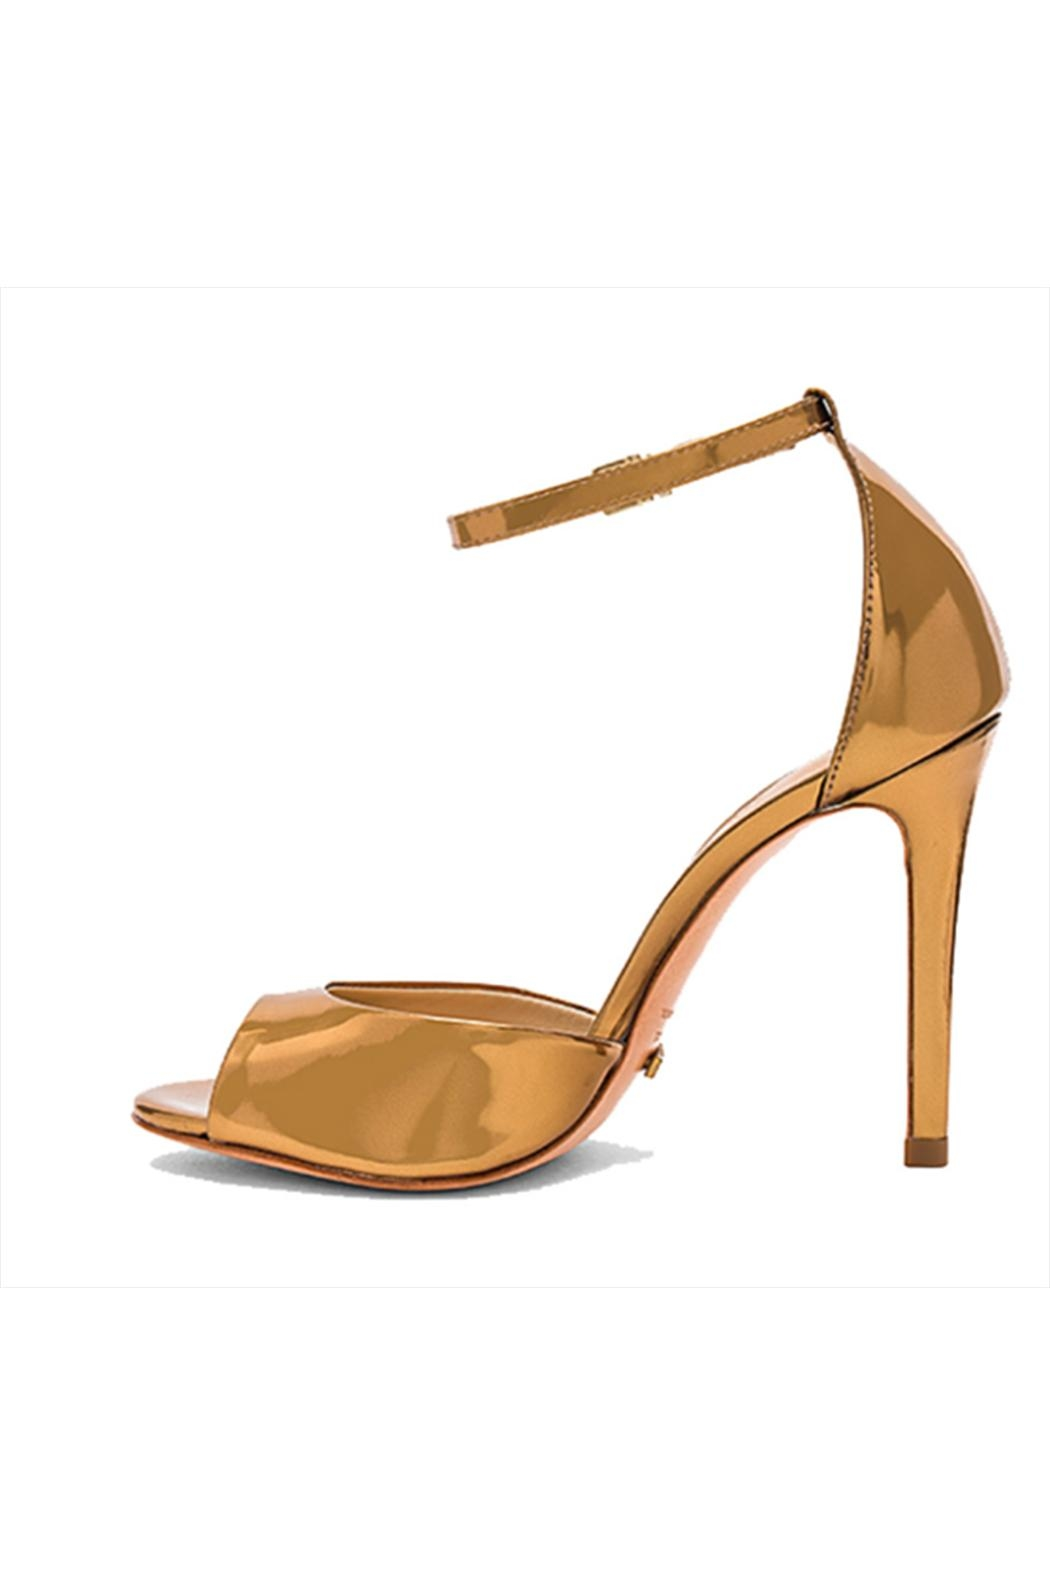 Schutz Saasha Lee Bronze Sandals - Main Image